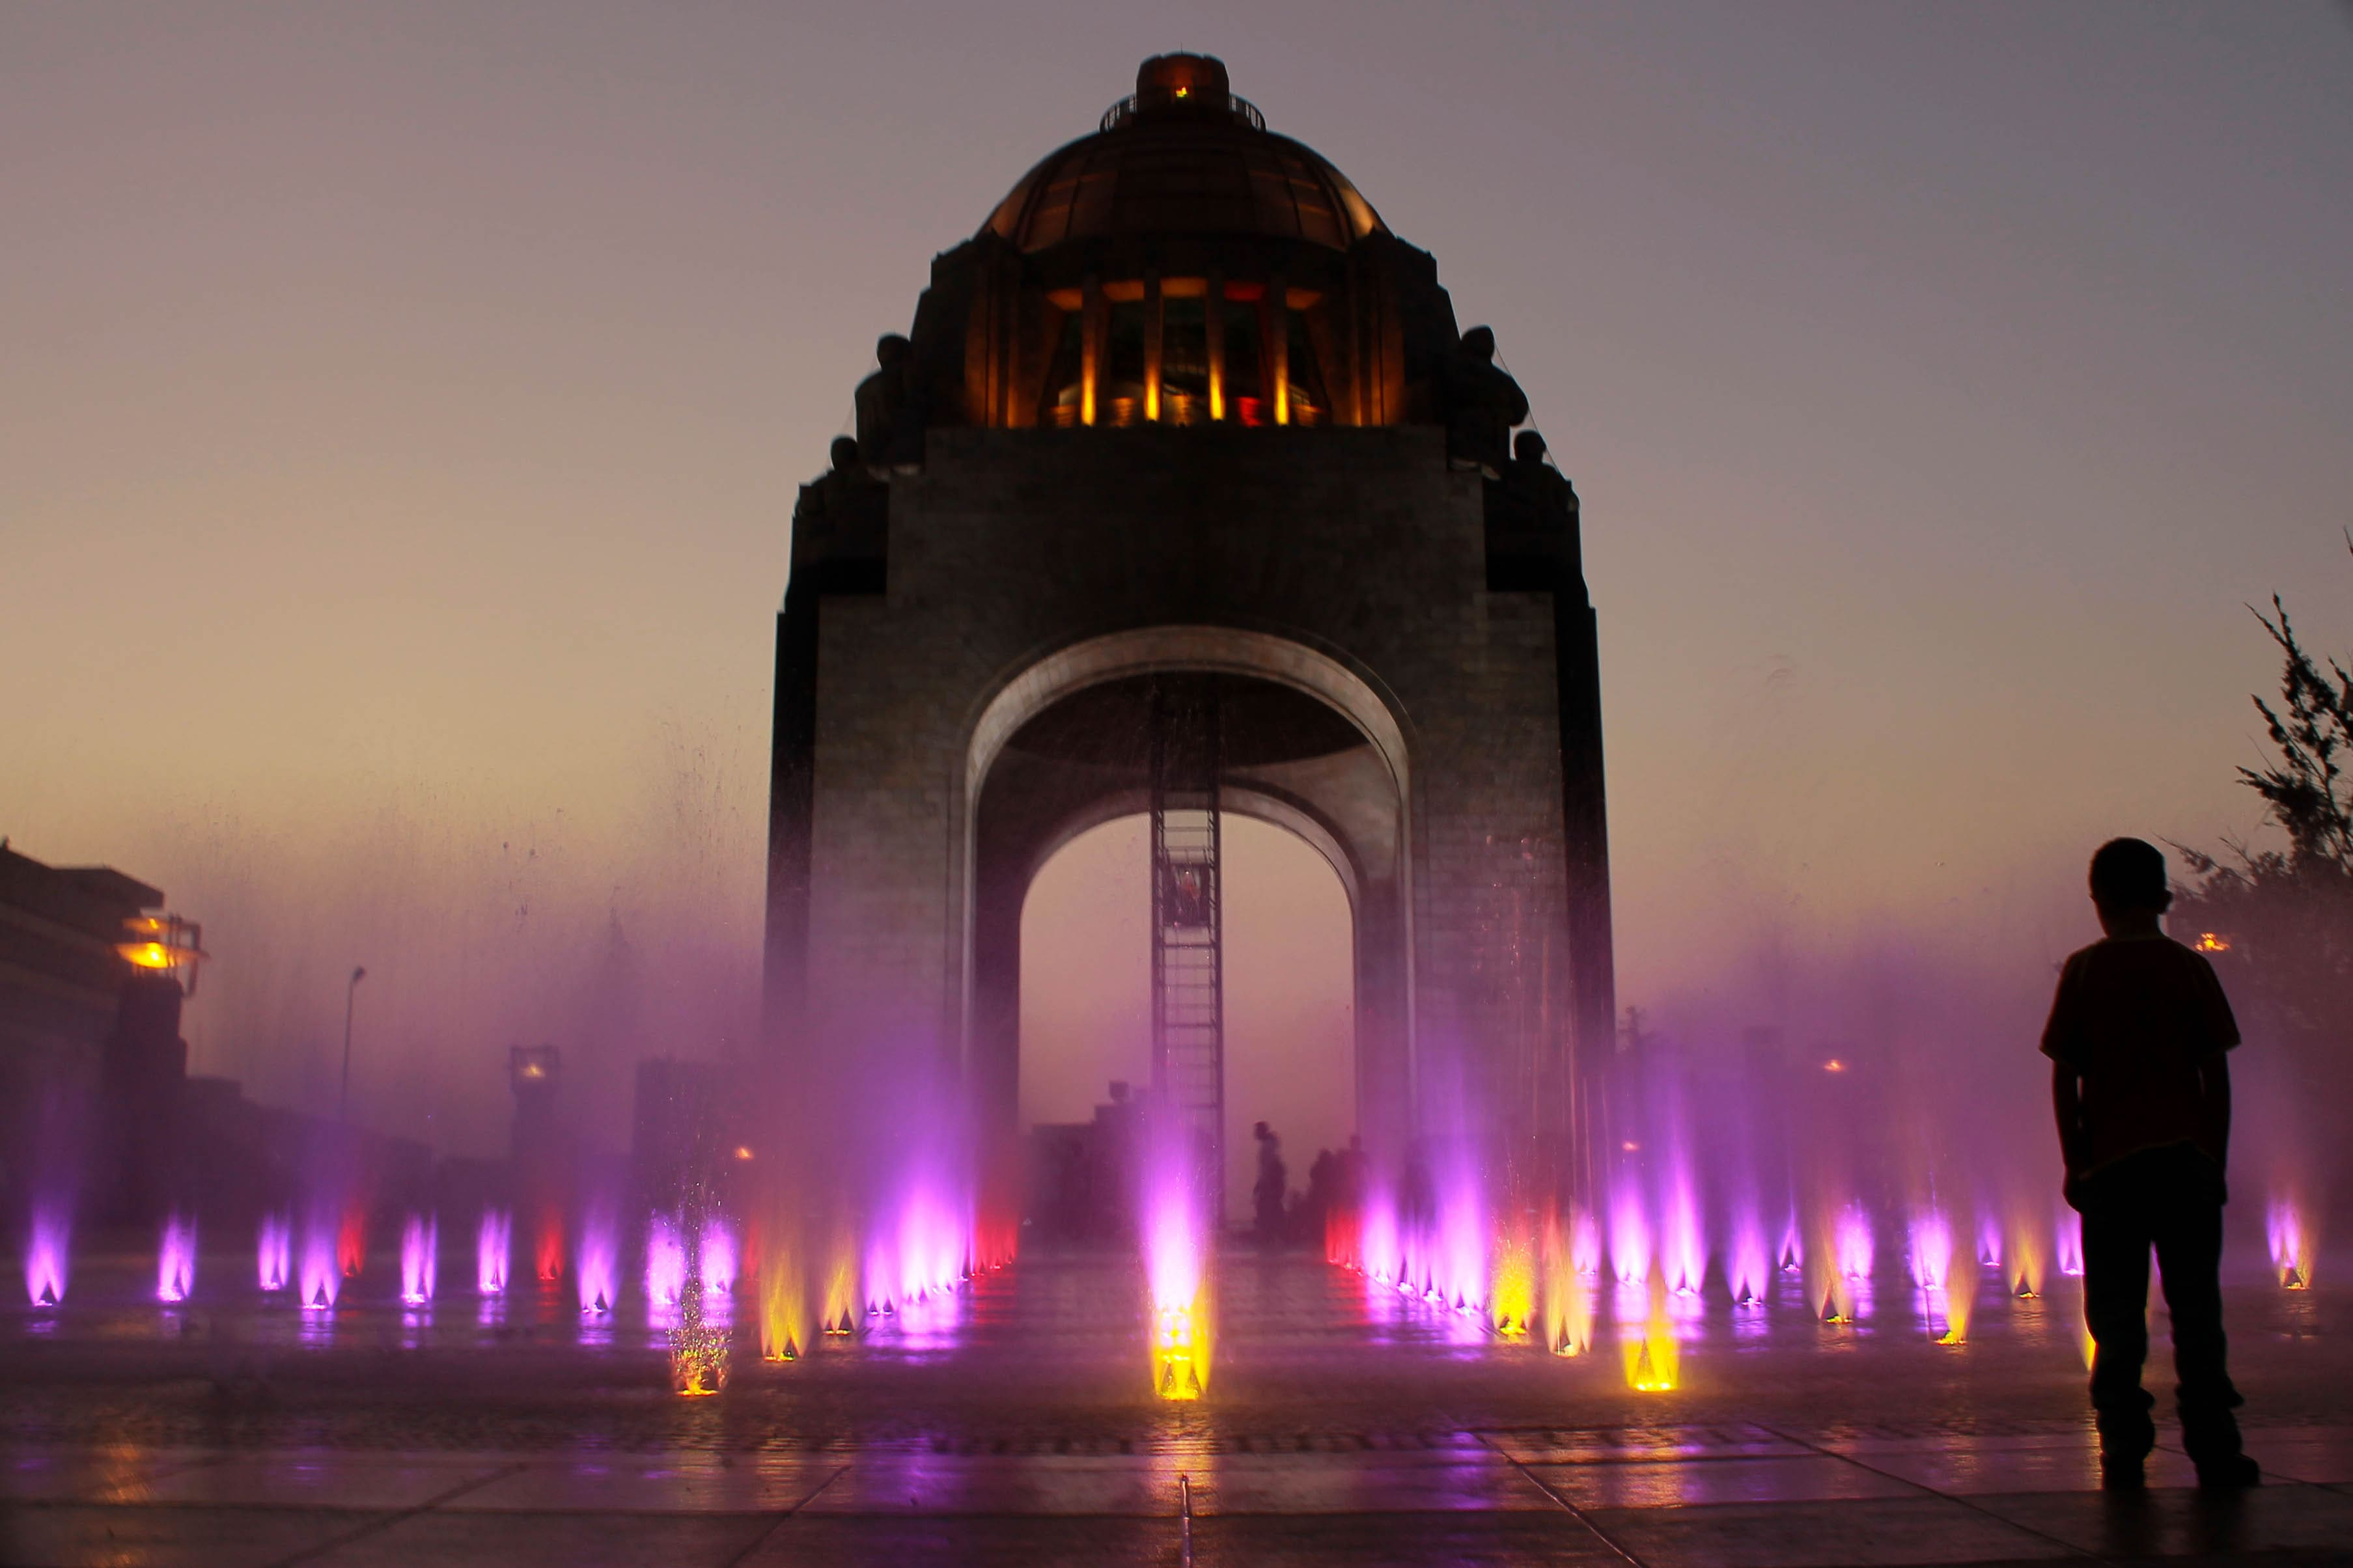 One of the coolest things in Mexico City is to climb the Monumento de la Revolucion